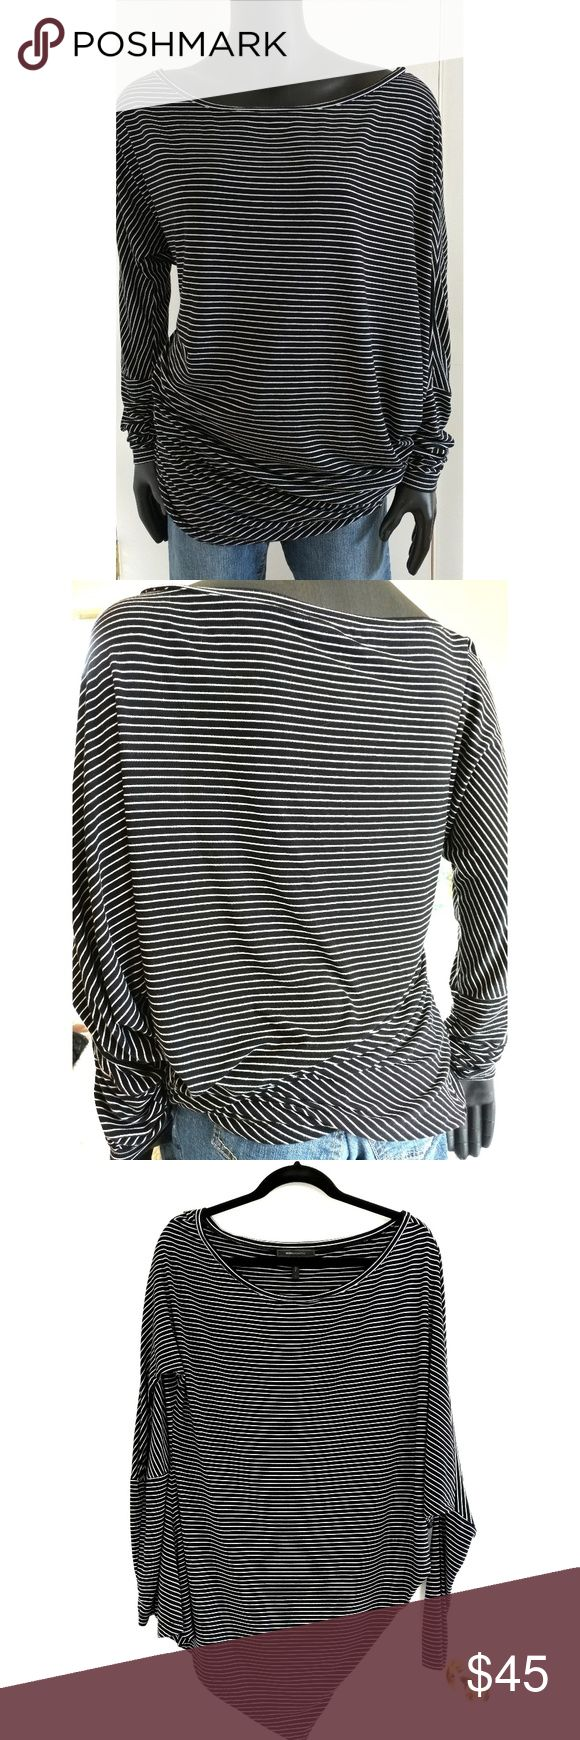 """BCBG MAXAZRIA Asymmetrical Striped Top, Large Striking asymmetrical striped pullover top, size large Measurements: neckline ~13"""" length ~26"""" from right shoulder to hem, 33"""" from left shoulder to longest hem Hem width ~19""""  The hem is asymmetric when on a hanger but it fits snugly around your waist or hips so that the top itself is asymmetric.  Great design!  Rayon/spandex blend is very comfortable.  Top is in excellent condition. BCBGMaxAzria Tops Blouses"""